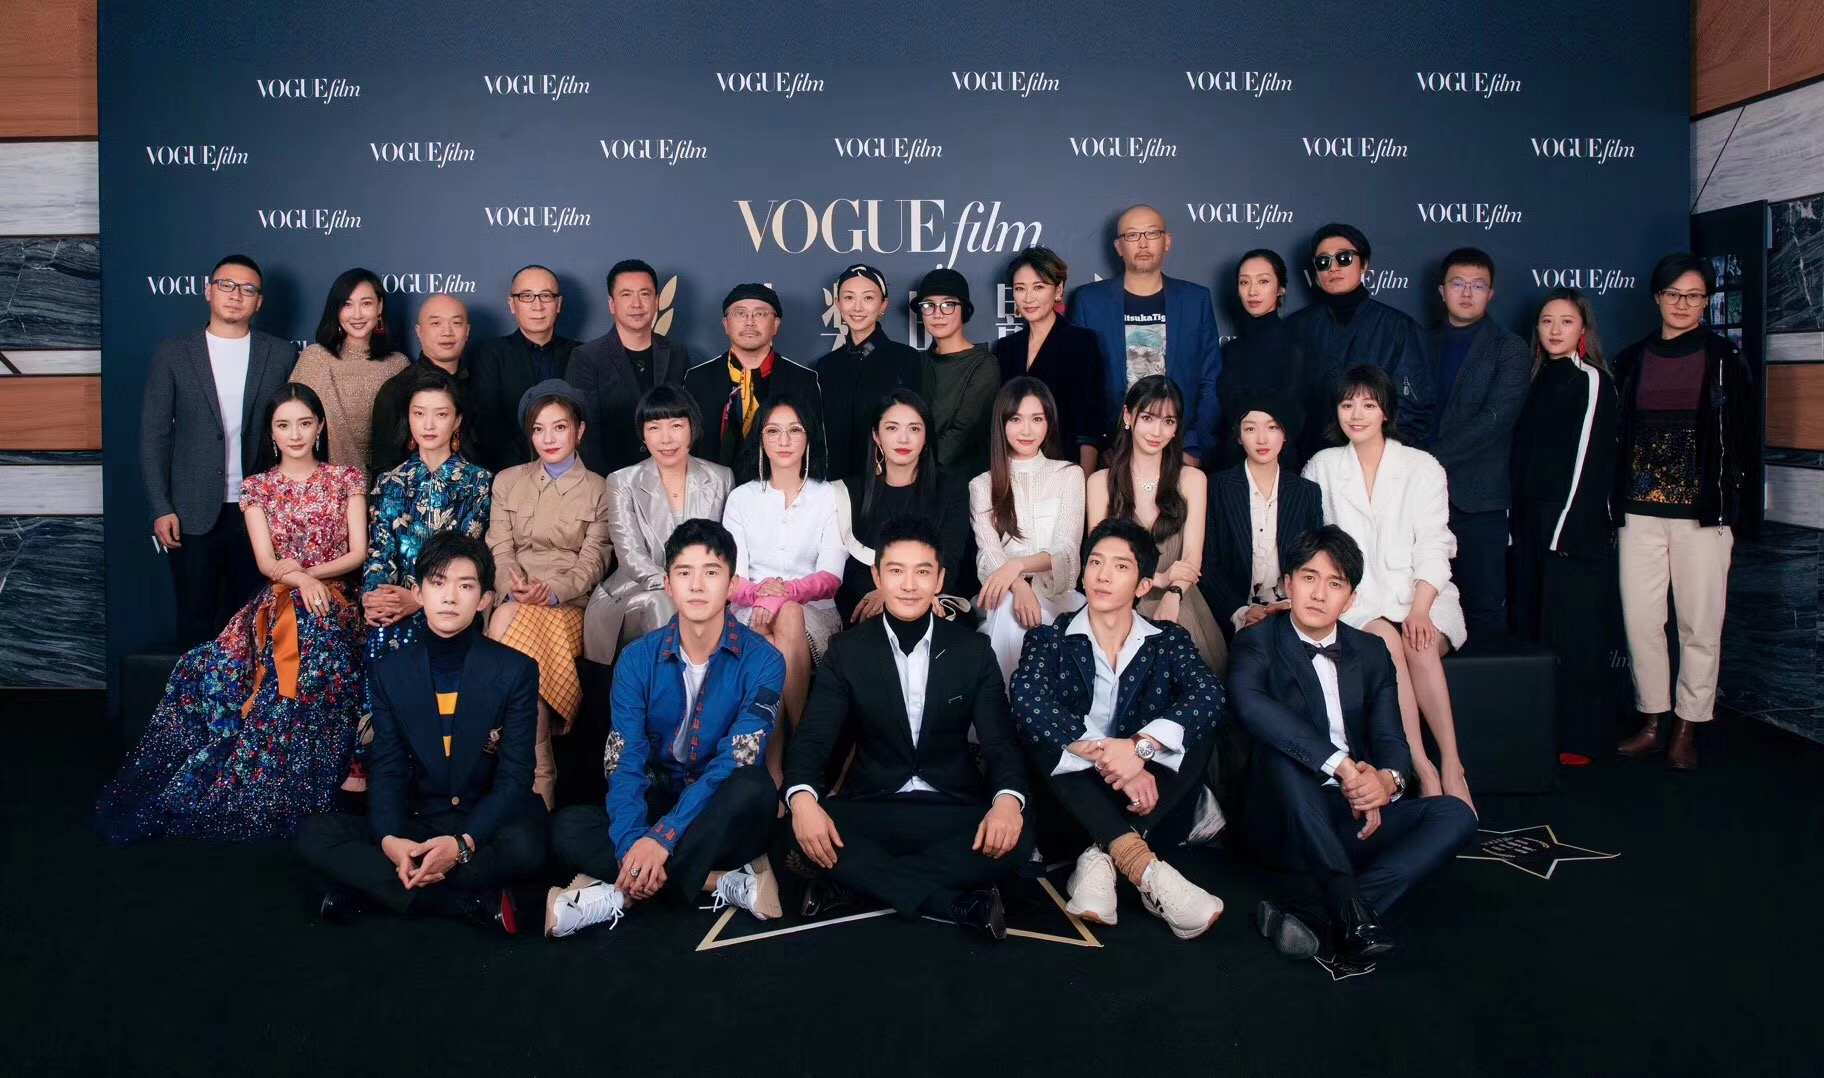 Xiaoming huang warmly appeared in fashion film festival with works as mirrors to regain his original intention and forge ahead